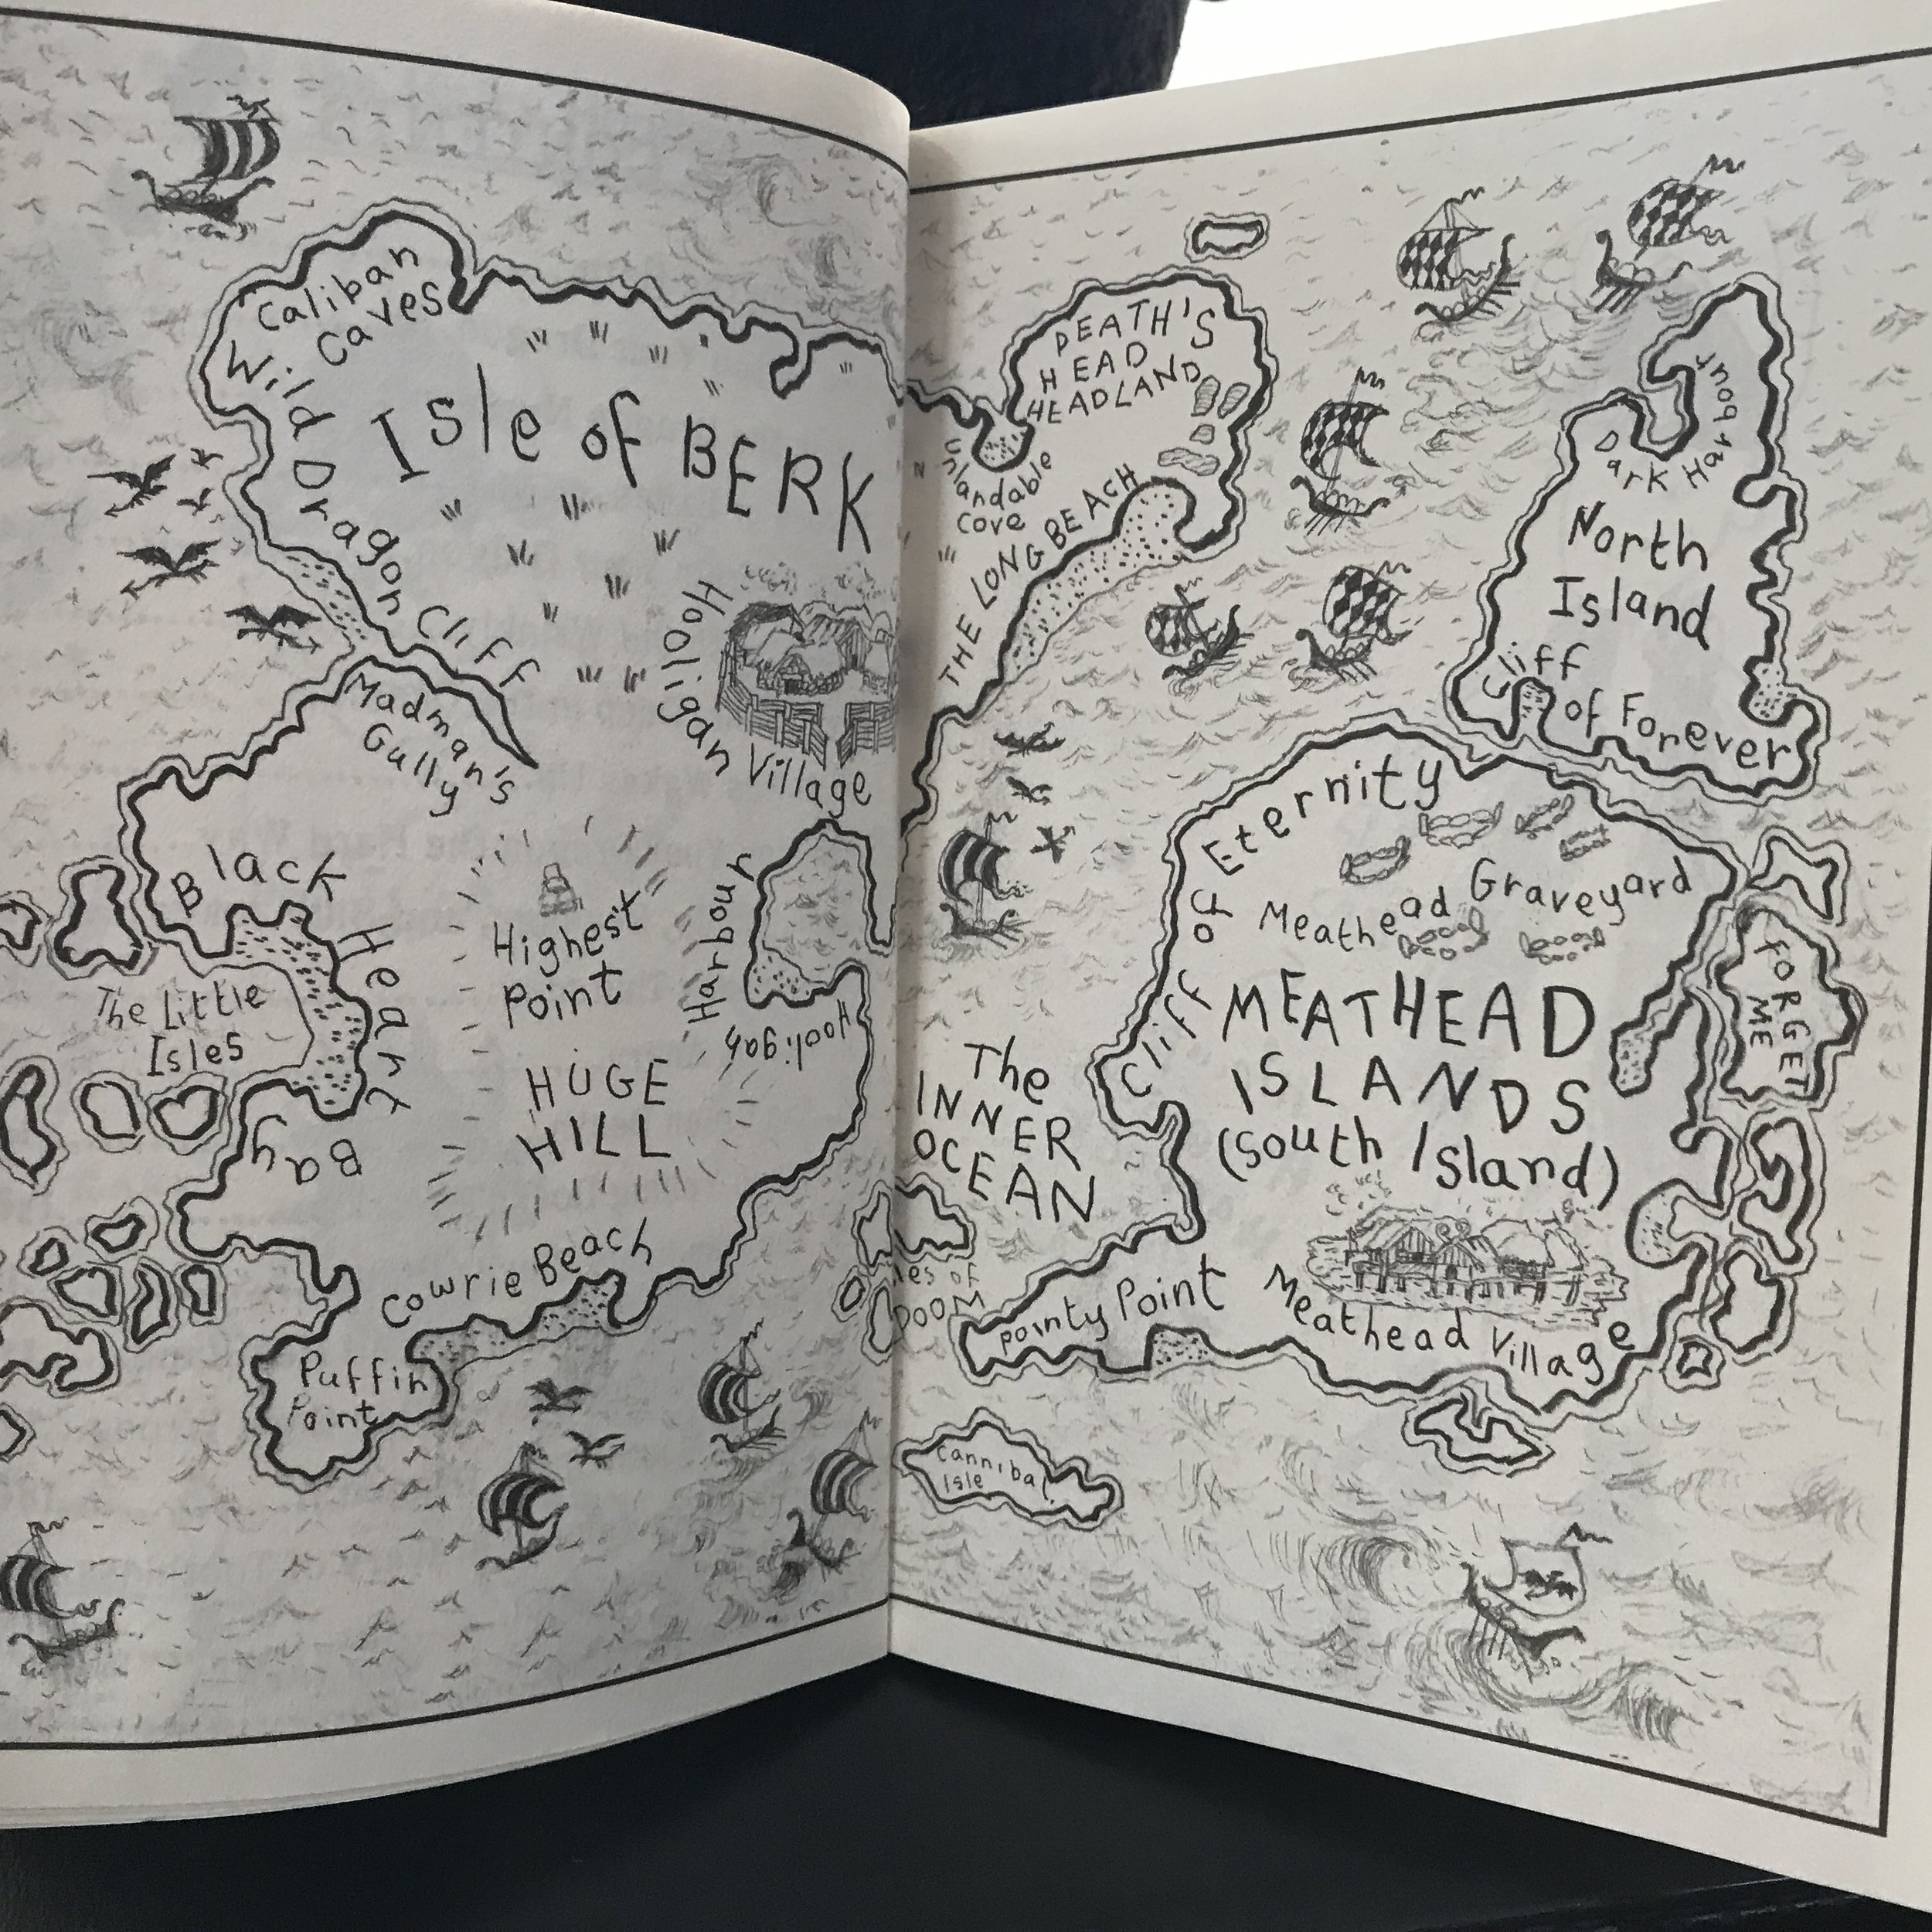 How to Train Your Dragon Excerpt Map.JPG